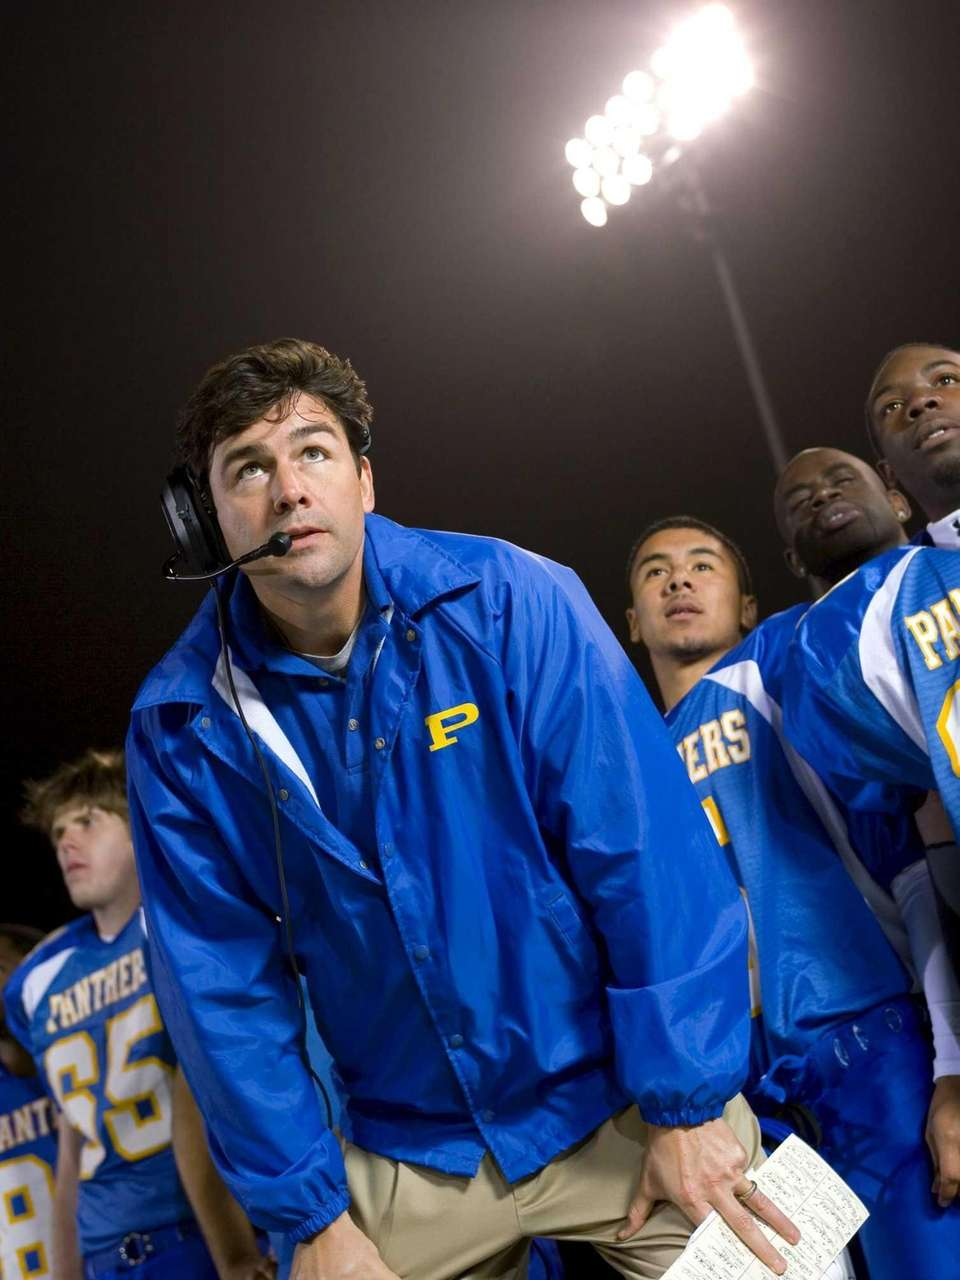 Kyle Chandler was the coach trying to lead